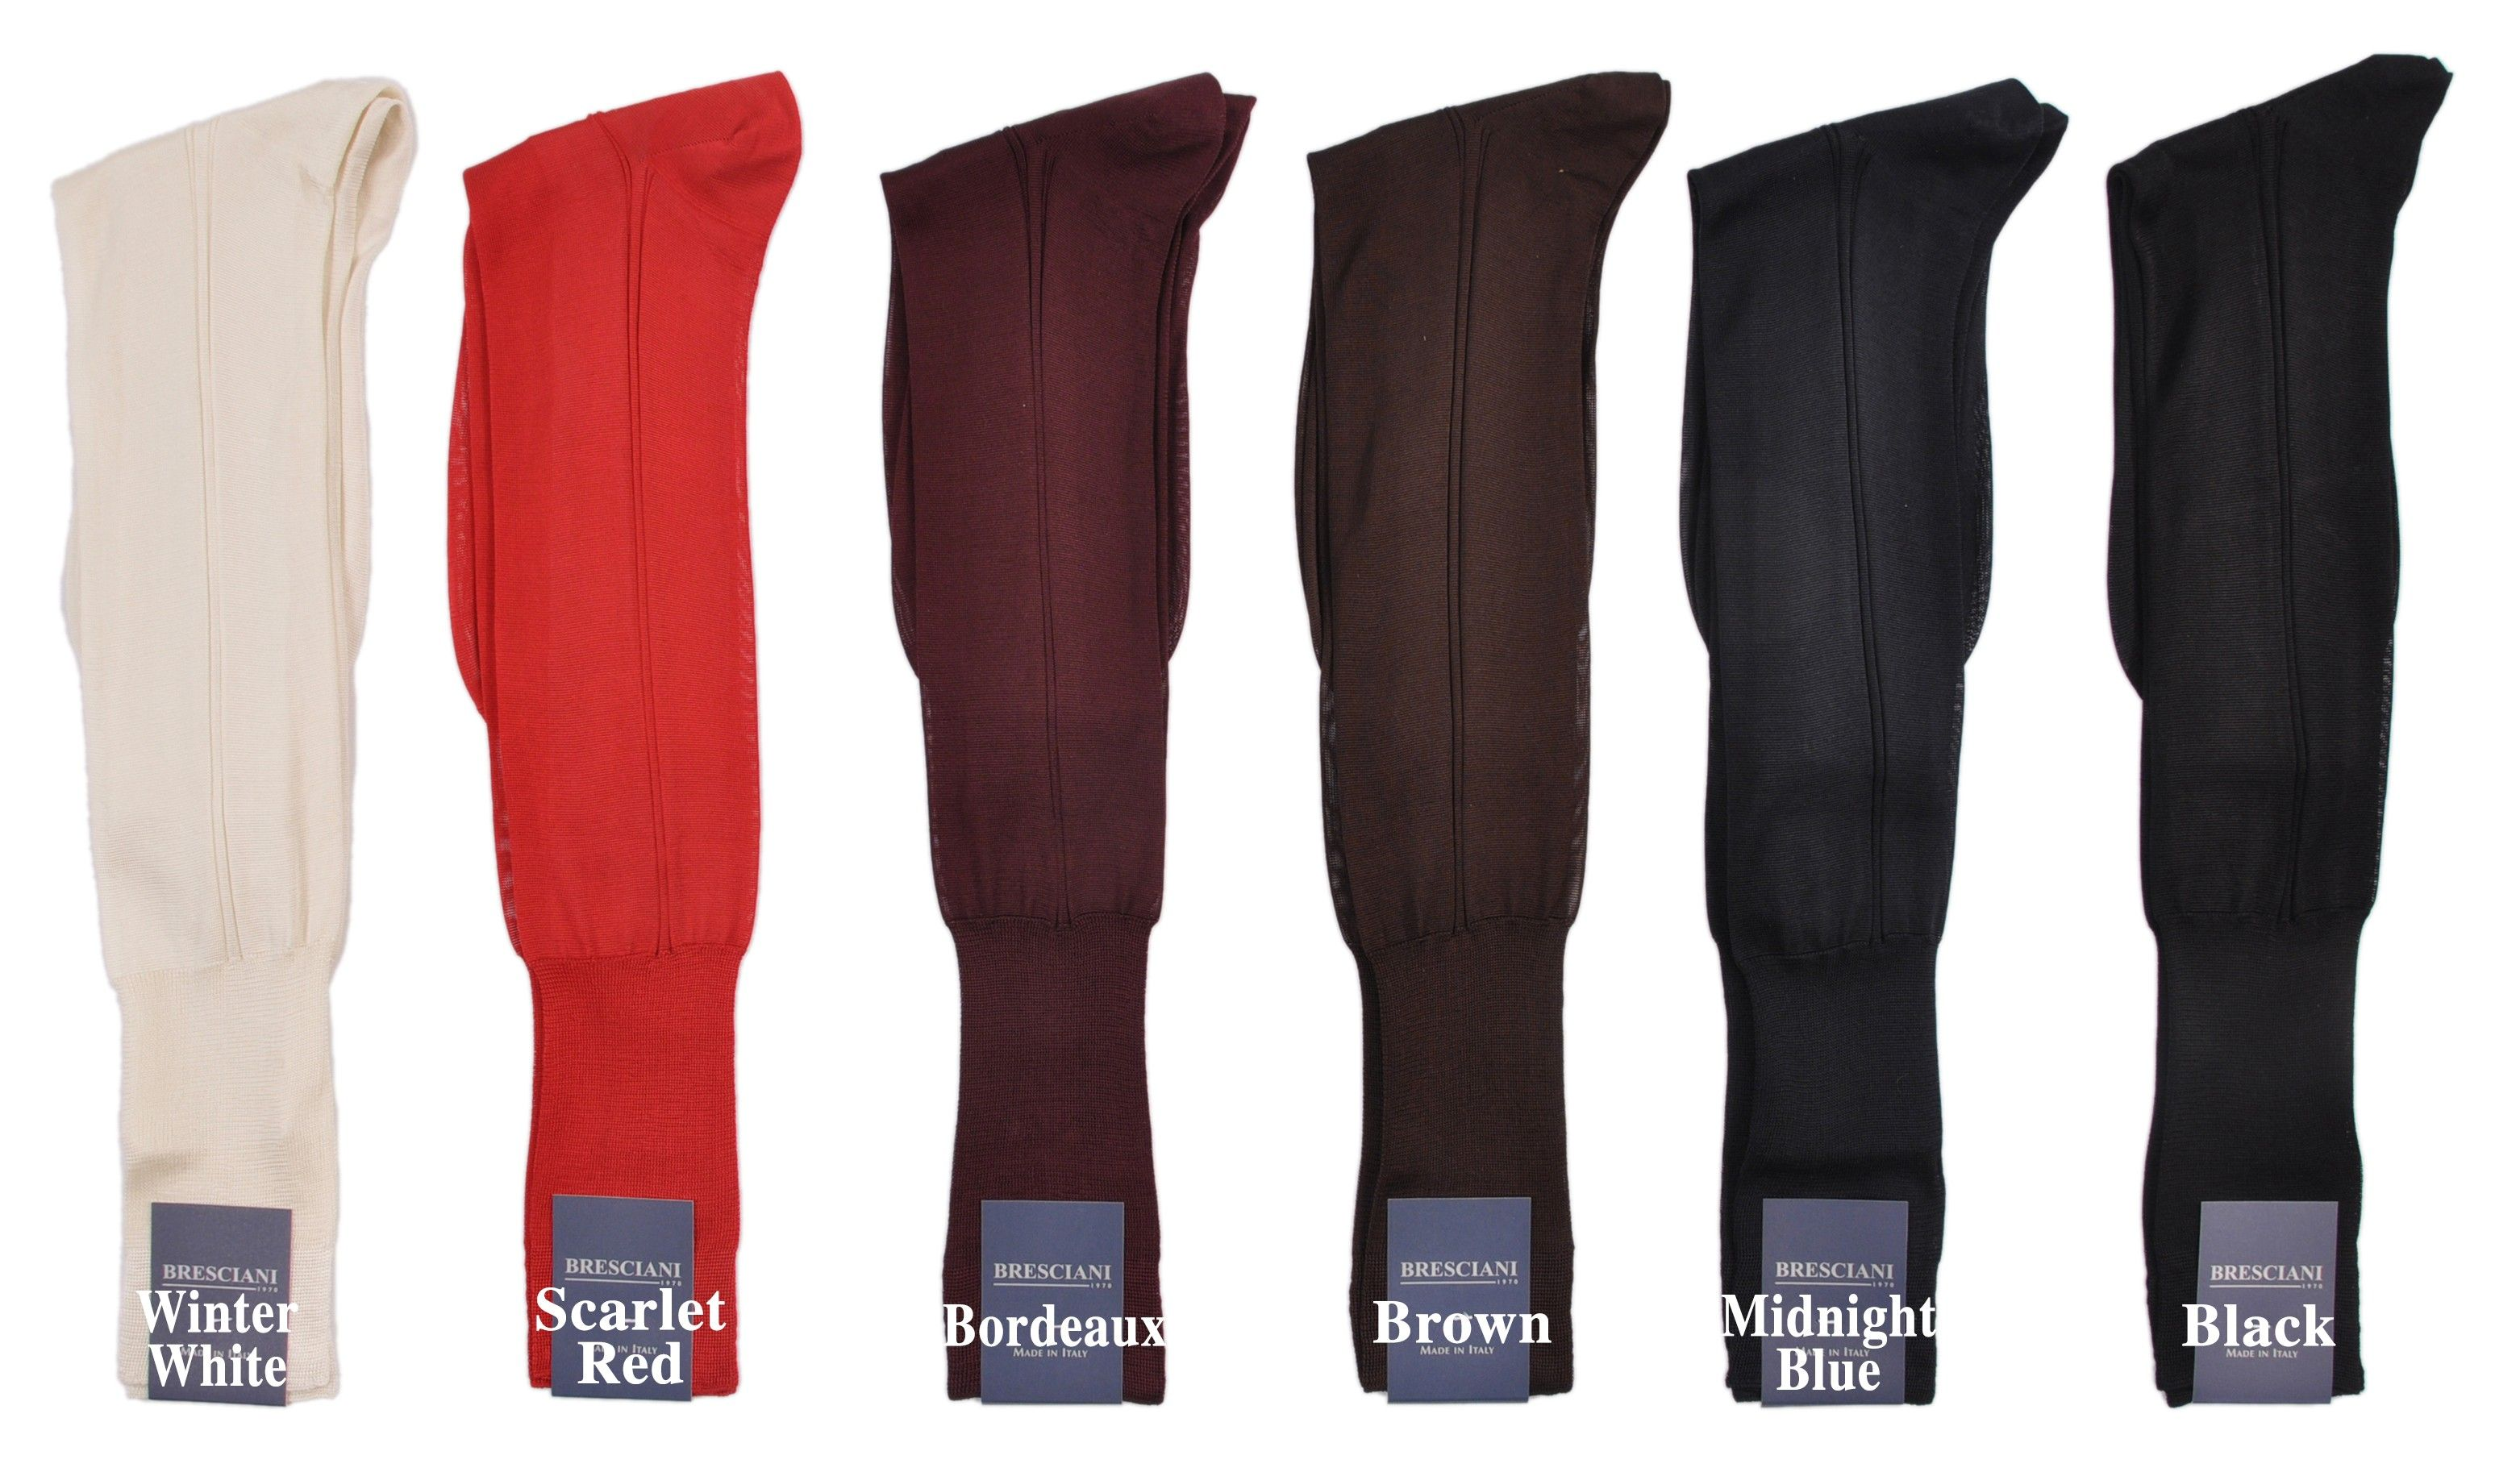 6fb715c078a65 Stunning Pure Silk Formal or Dress Over-the-Calf Socks by Bresciani 1970:  The World's Finest Socks